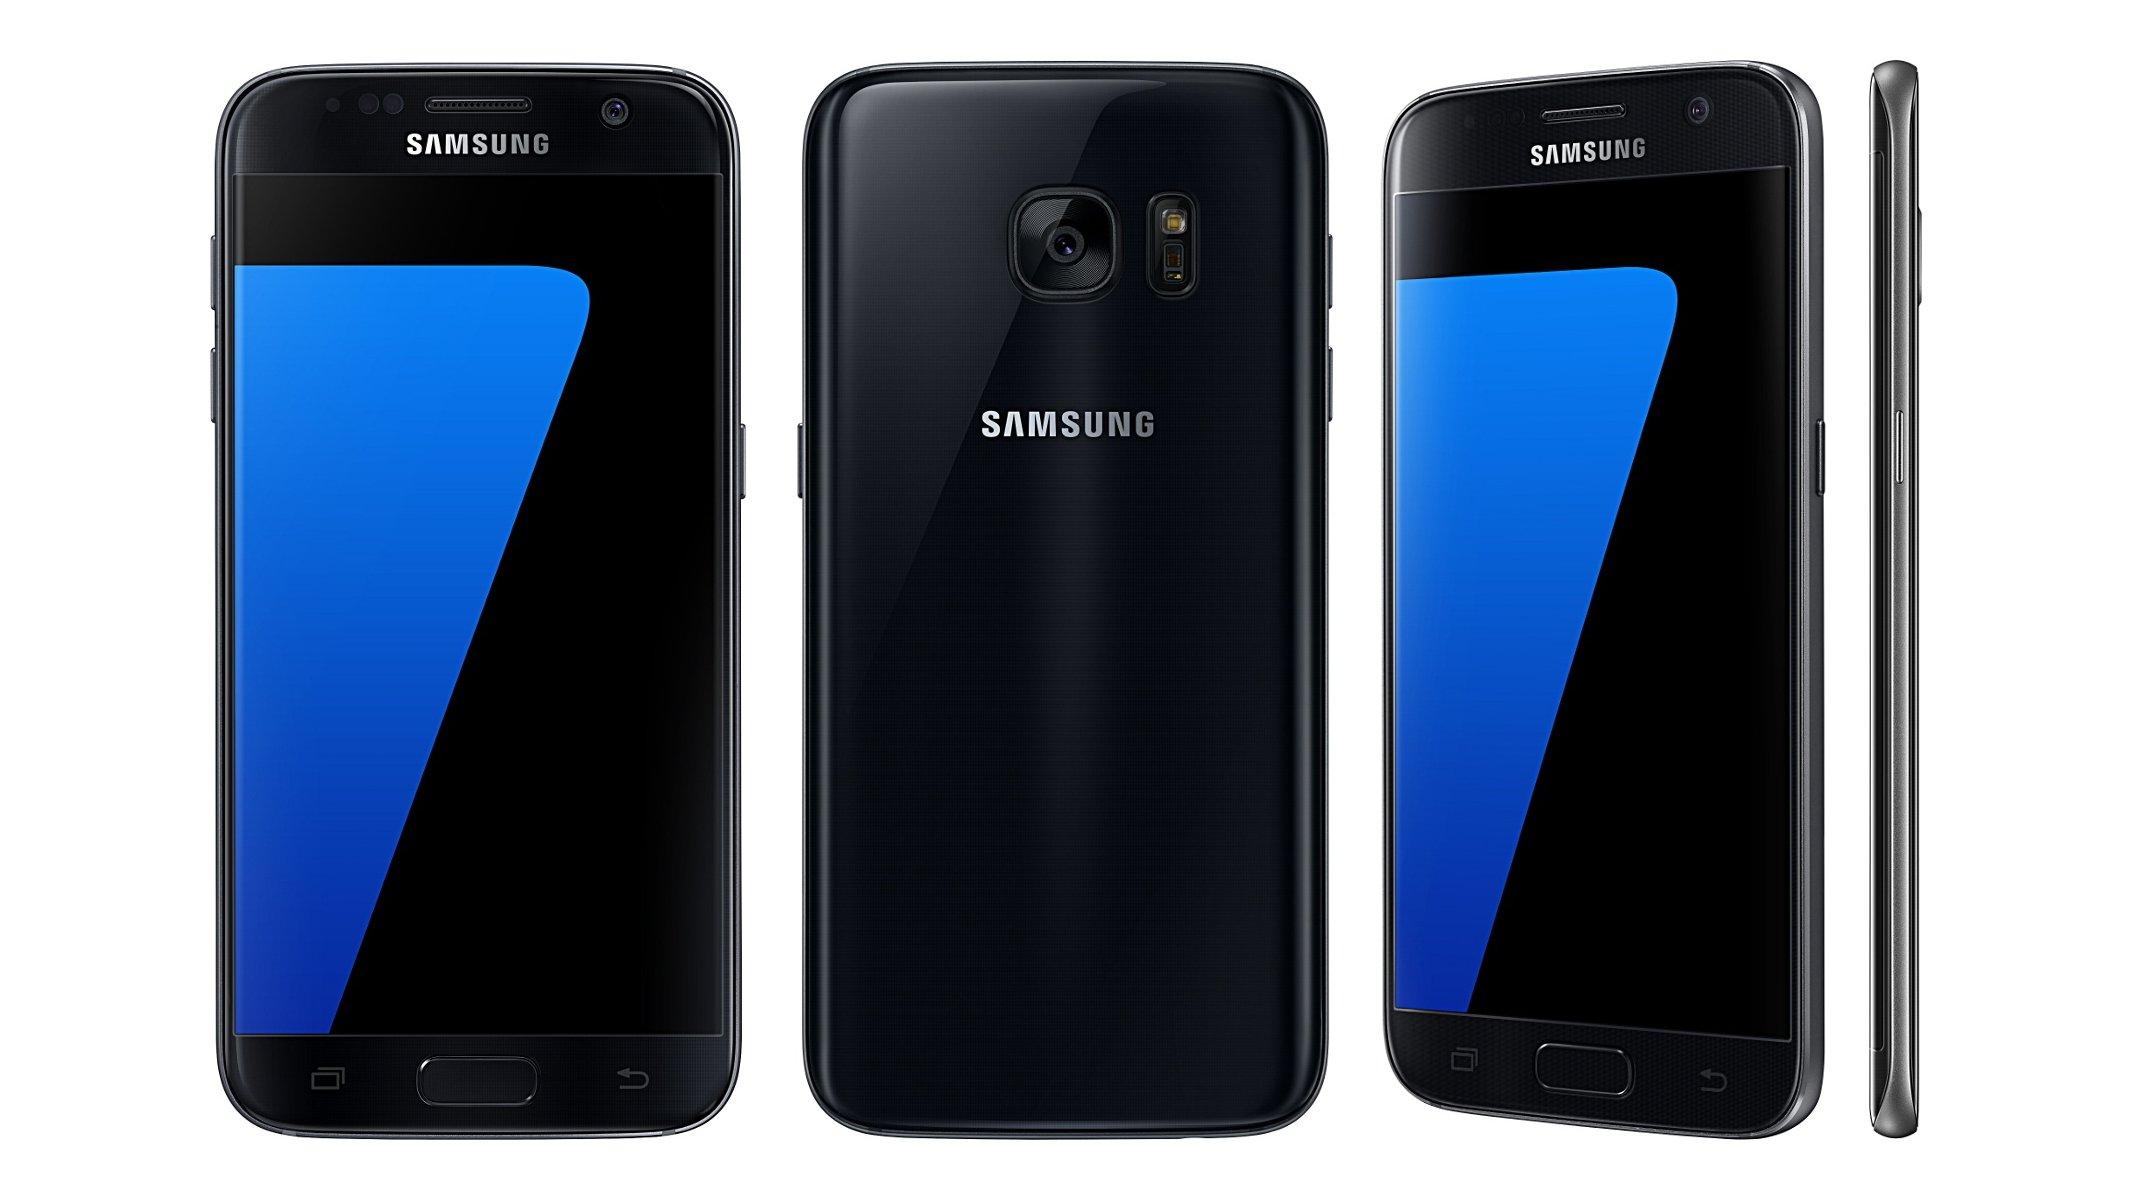 Iphone 7 Vs Samsung Galaxy S7 Which Is The Best